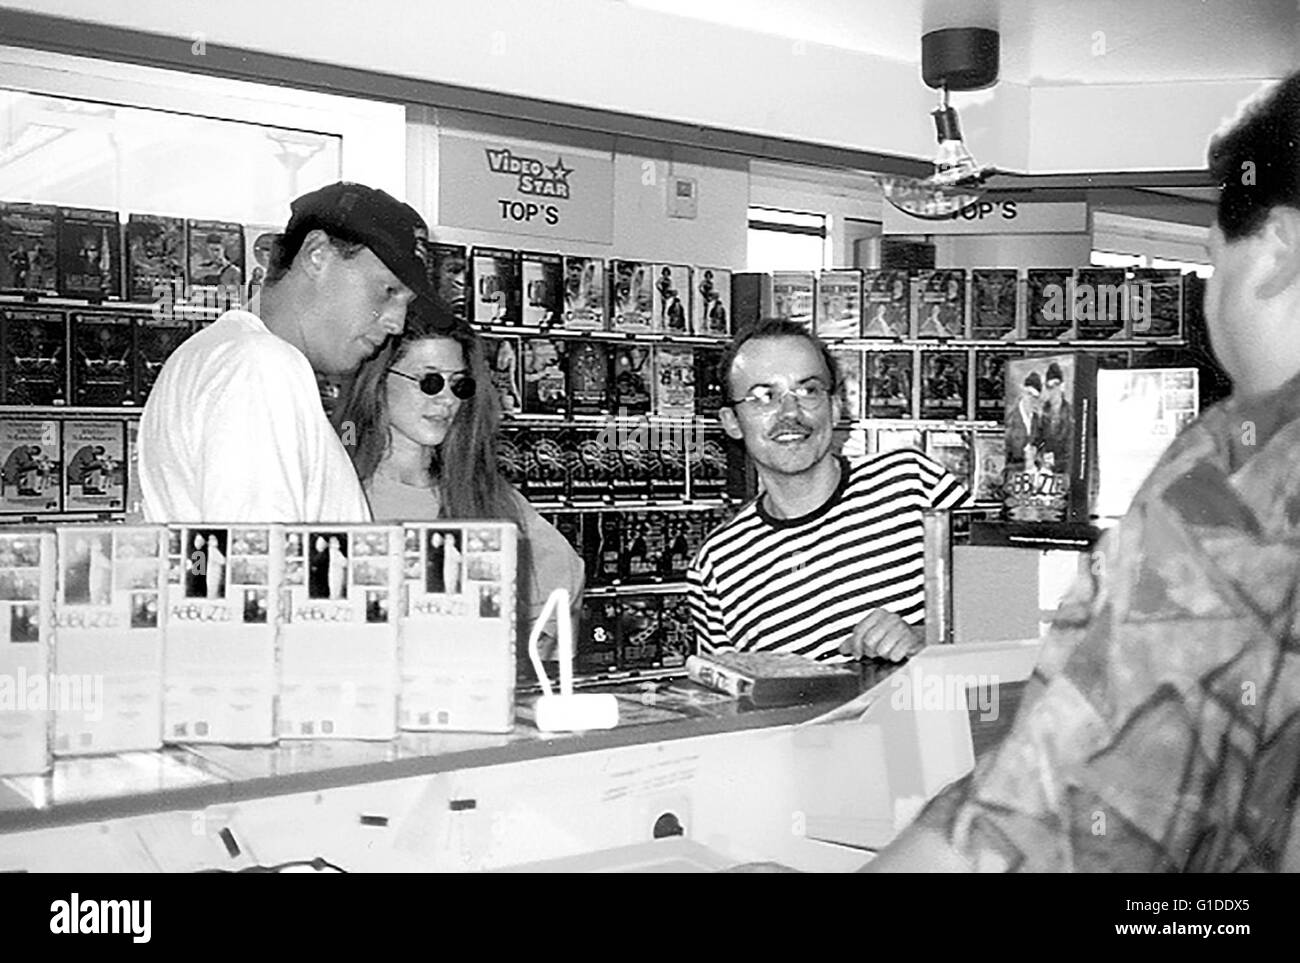 Erstaunlich Einrichtung Black And White Stock Photos U0026 Images   Alamy